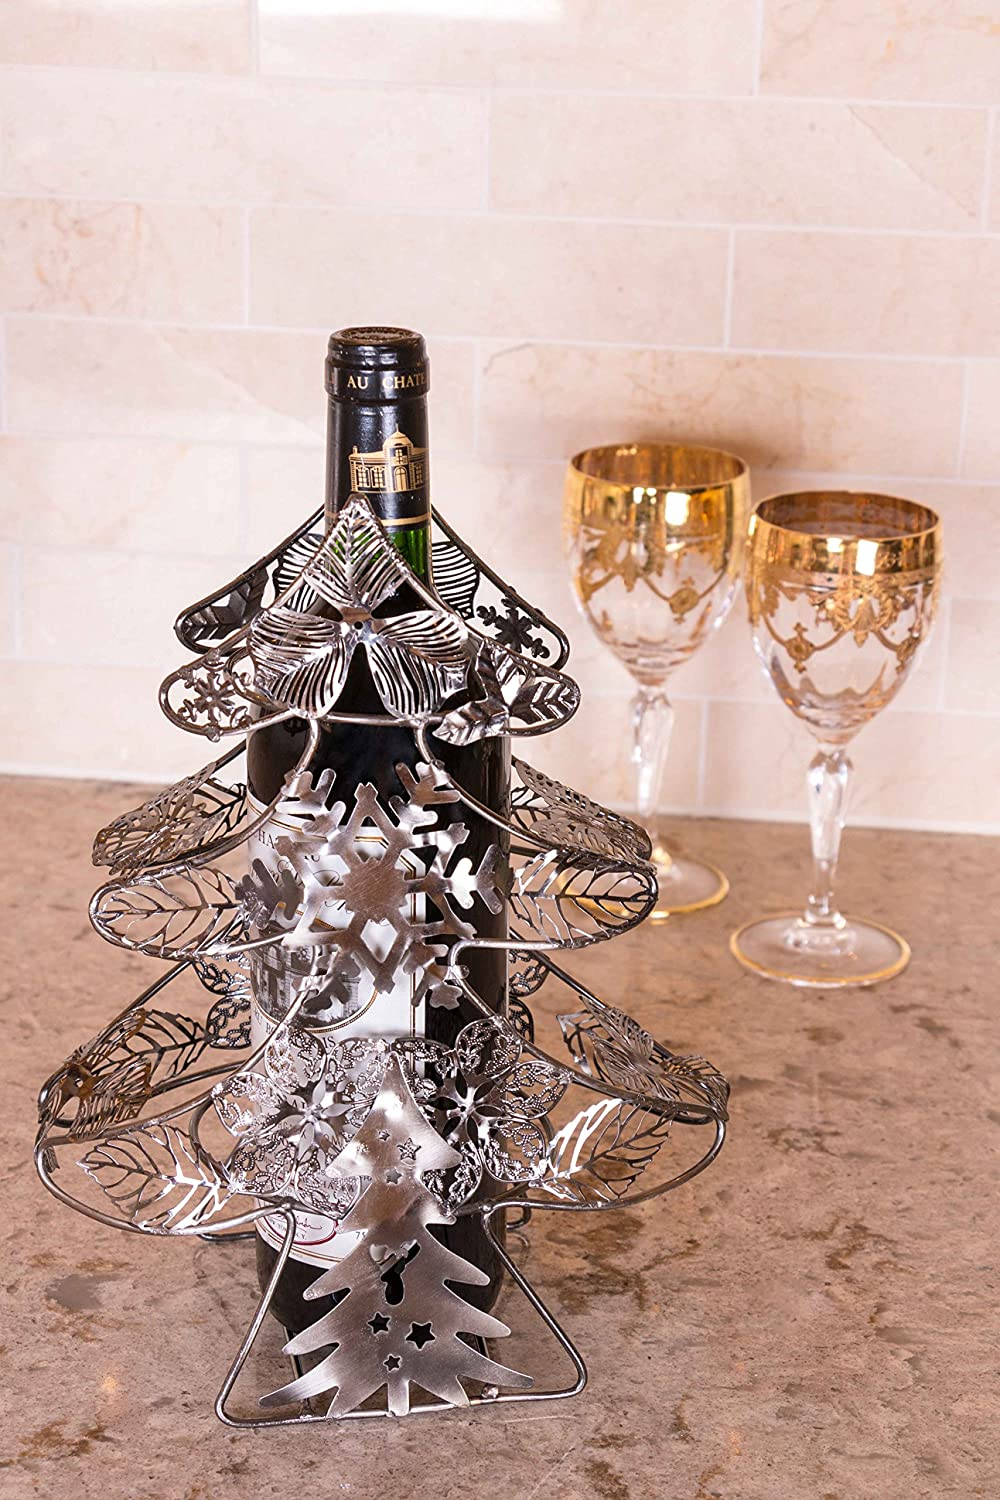 Stainless Steel Measures 10.5 x 8 x 4.25 Premium Metal Design Easily Fits Any Standard Wine Bottle Christmas Tree Wine Bottle Holder by Clever Creations Wide Stable Base